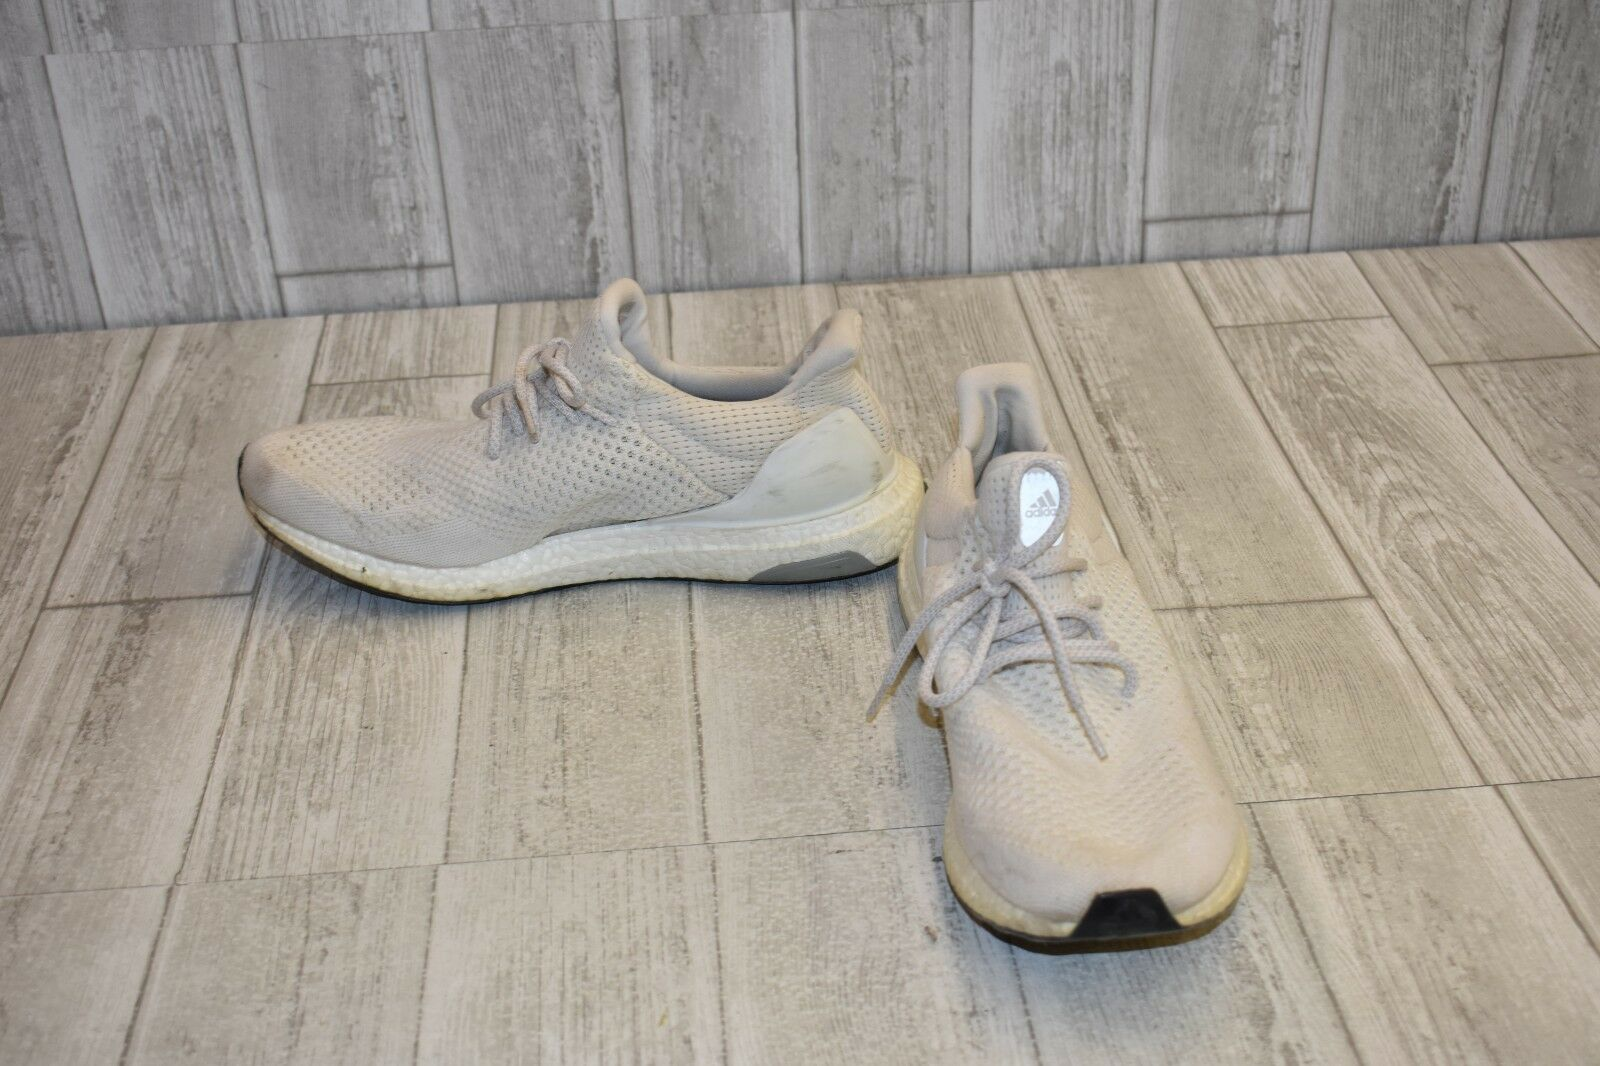 Adidas Ultra Boost Athletic shoes - Men's Size 12 - White